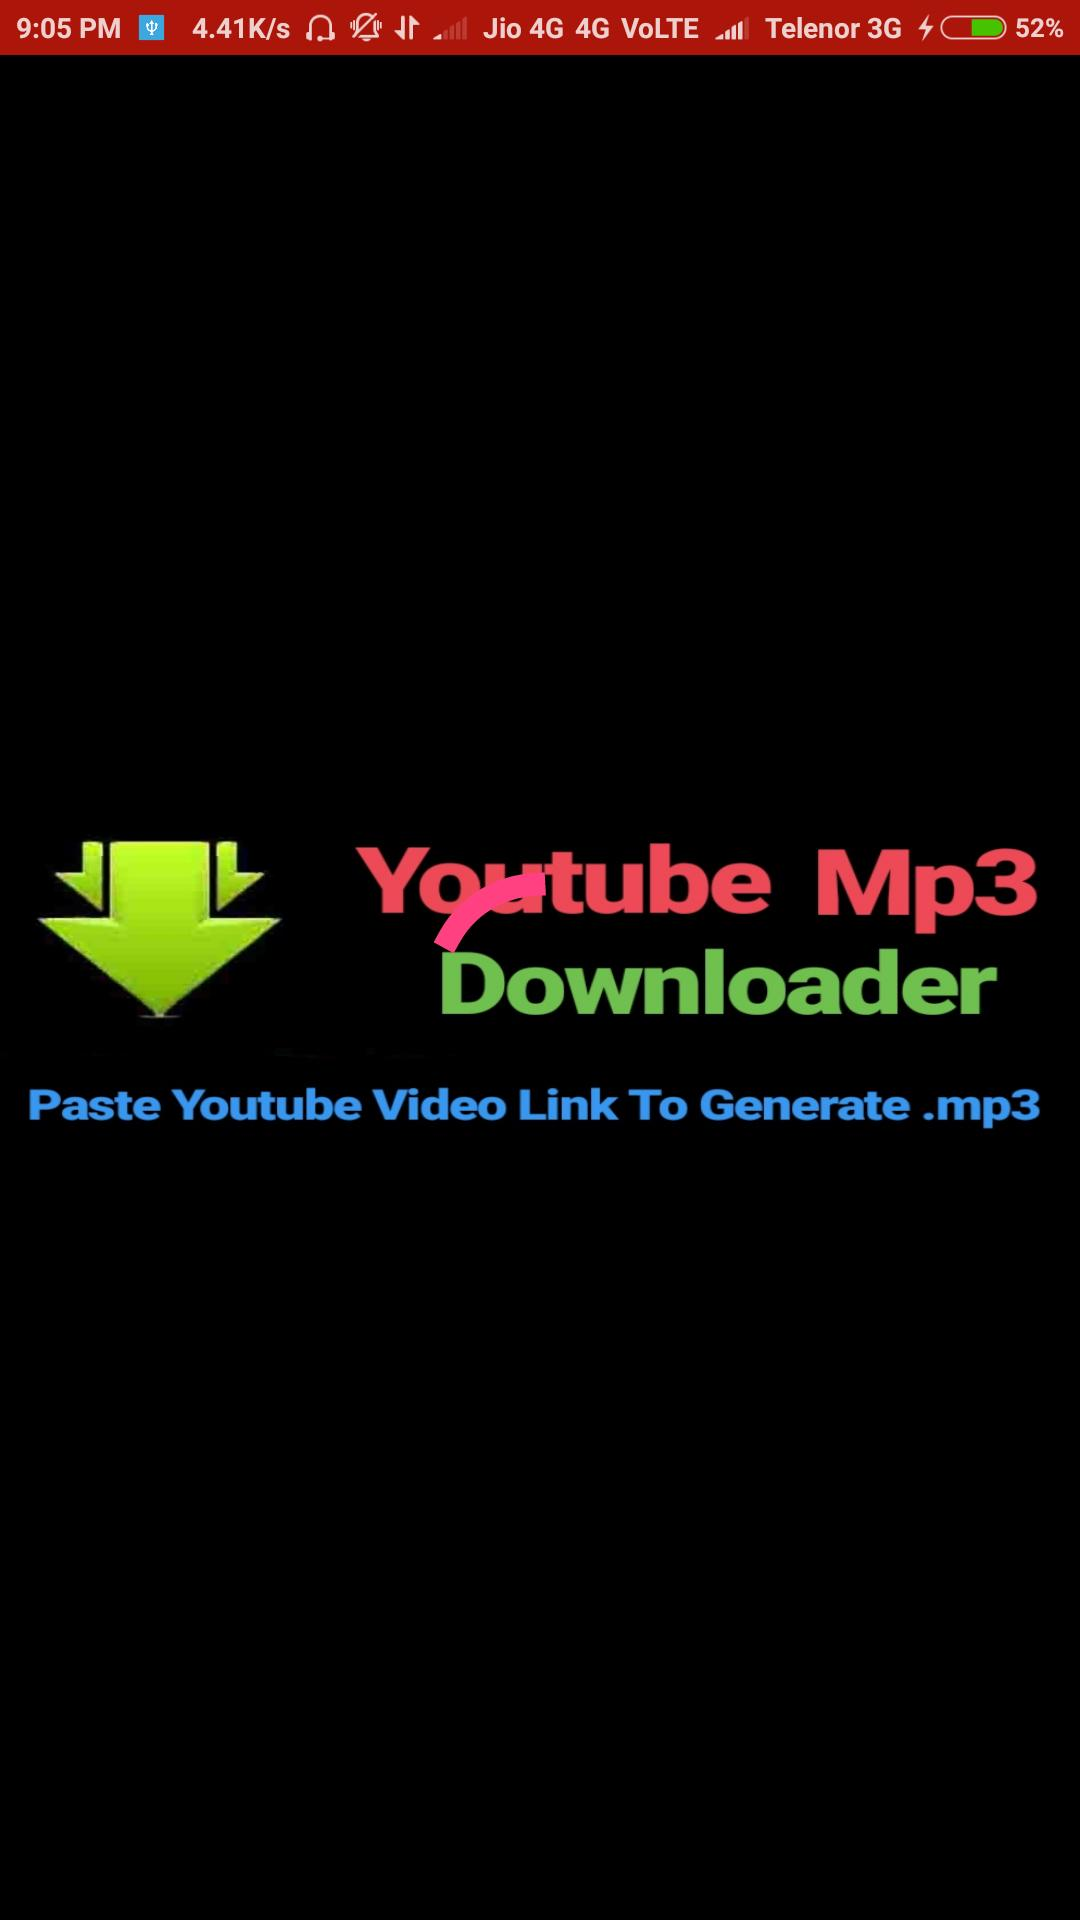 Youtube Mp3 Converter For Android Apk Download